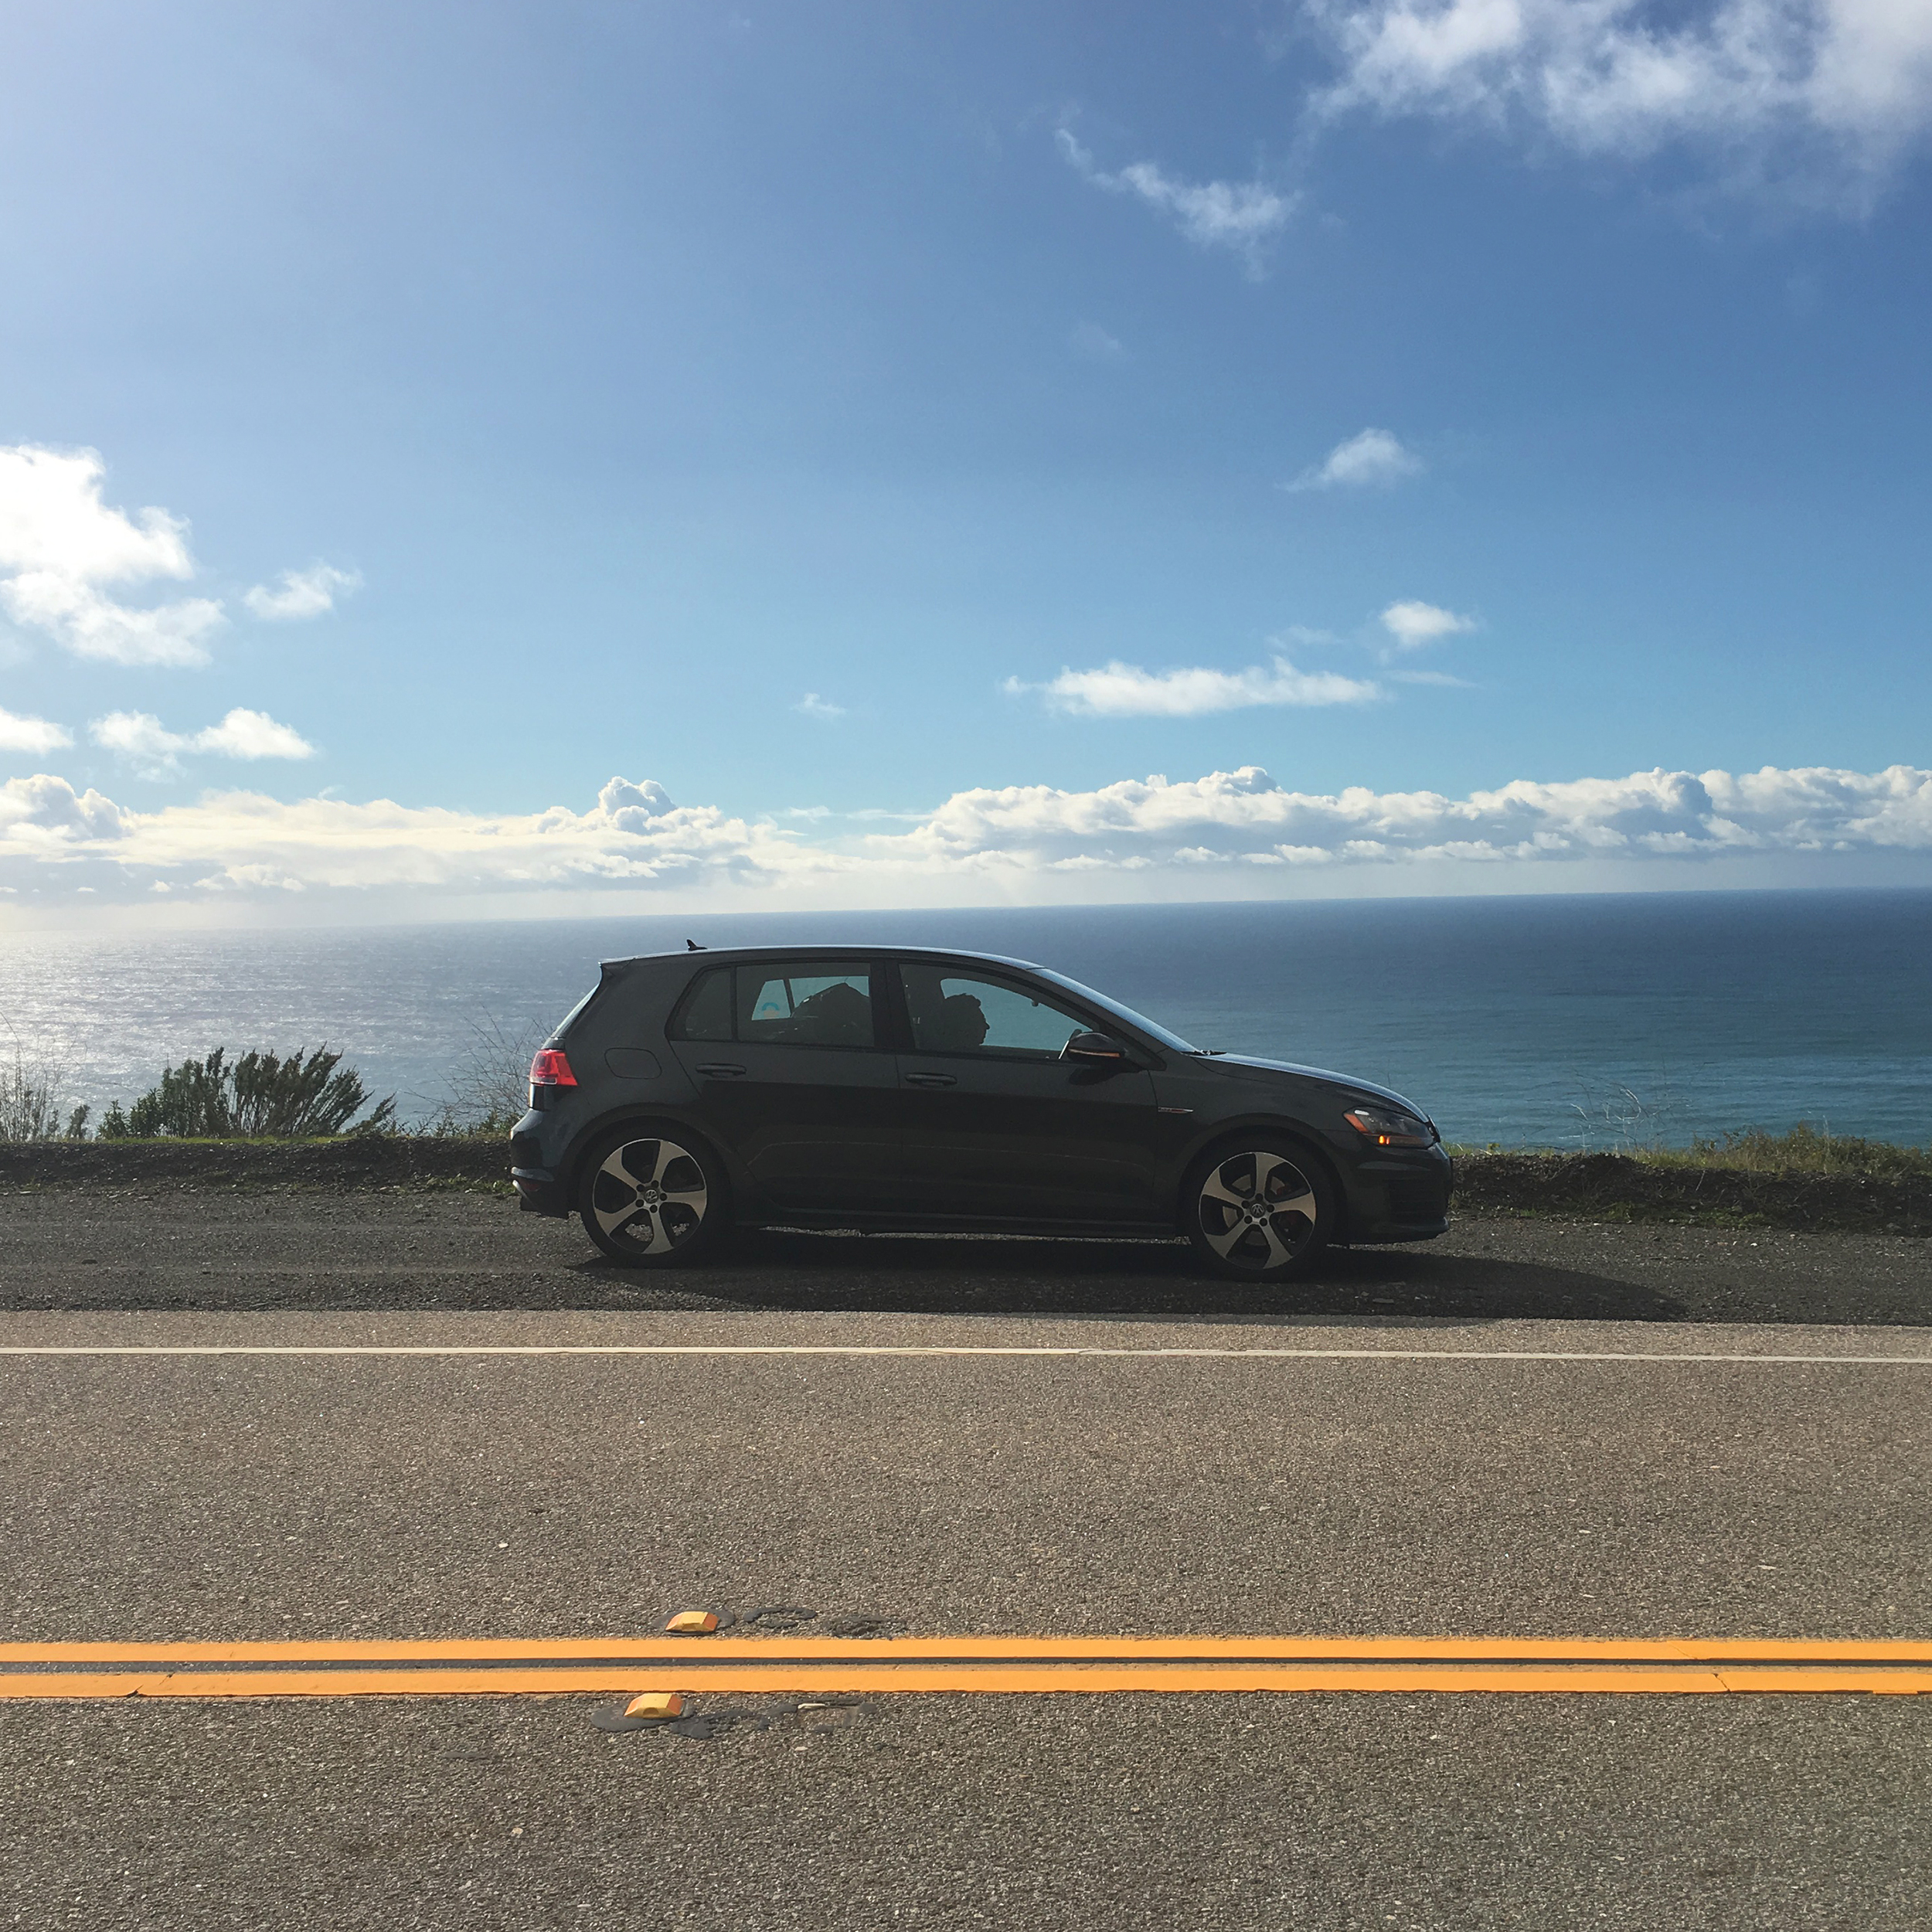 The little car that could — our VW GTI. Its heated seats got me through the back pain.